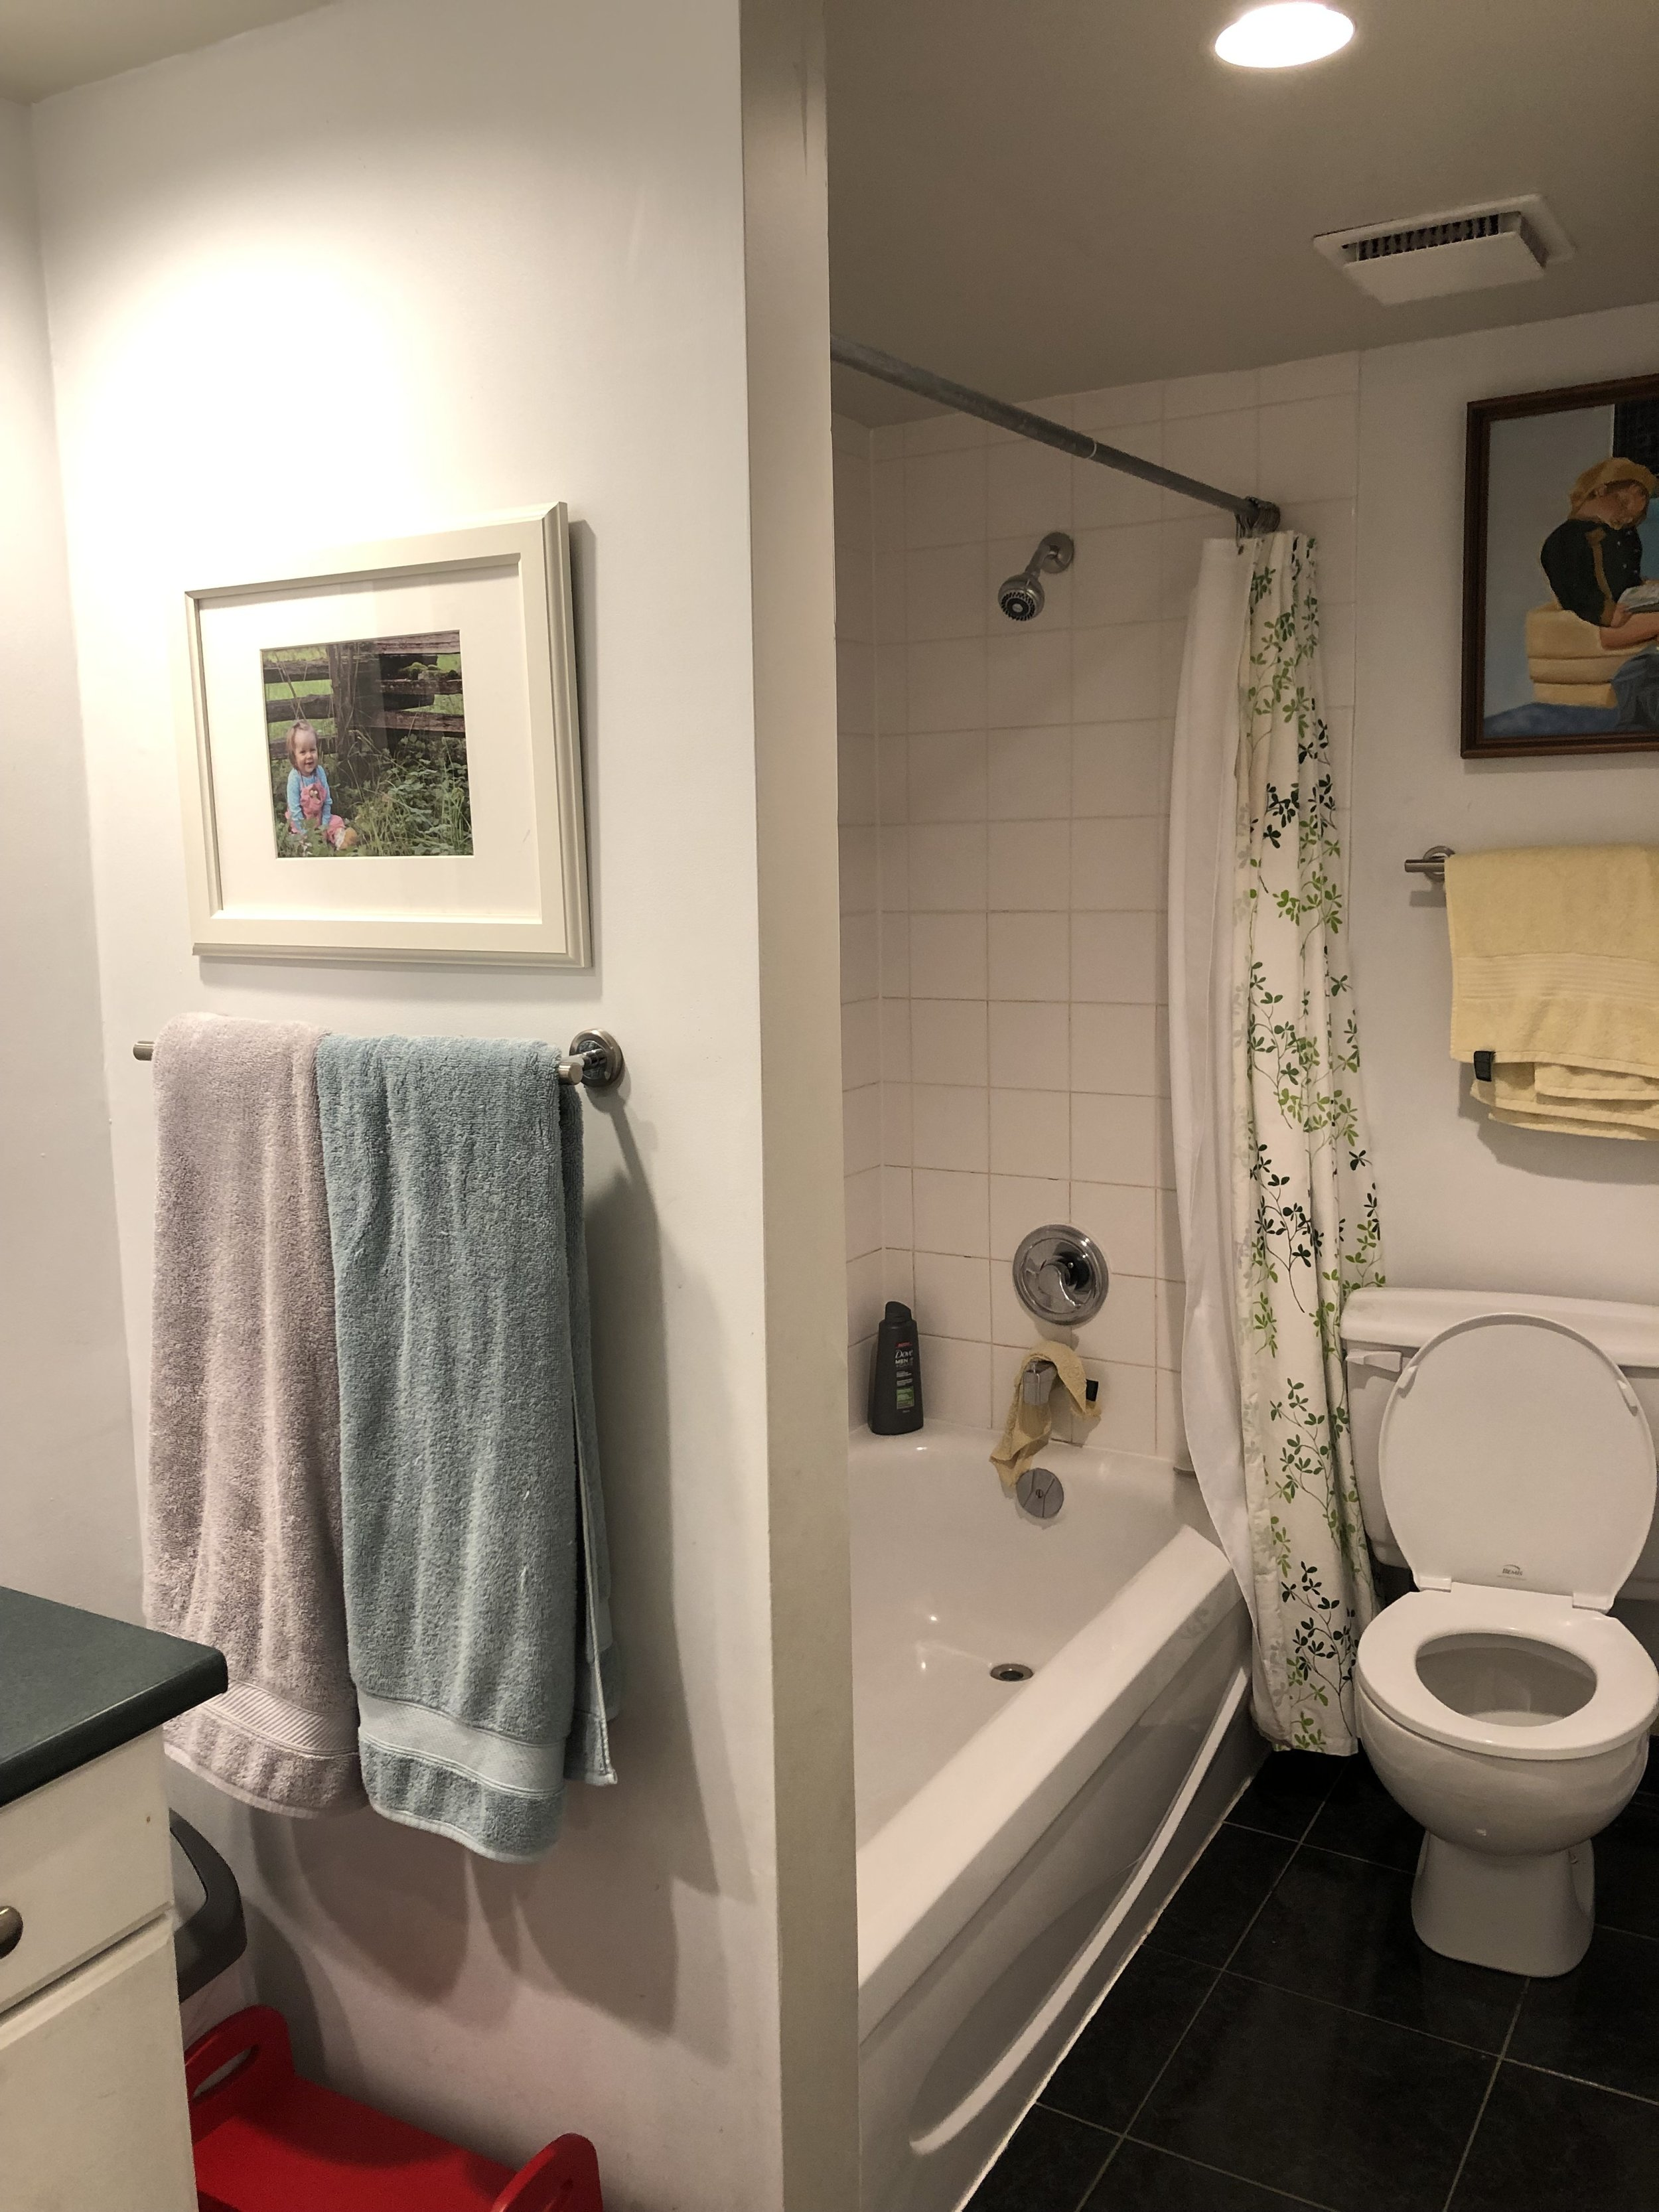 Before this bathroom was feeling dated and small and not somewhere anyone would want to go to relax